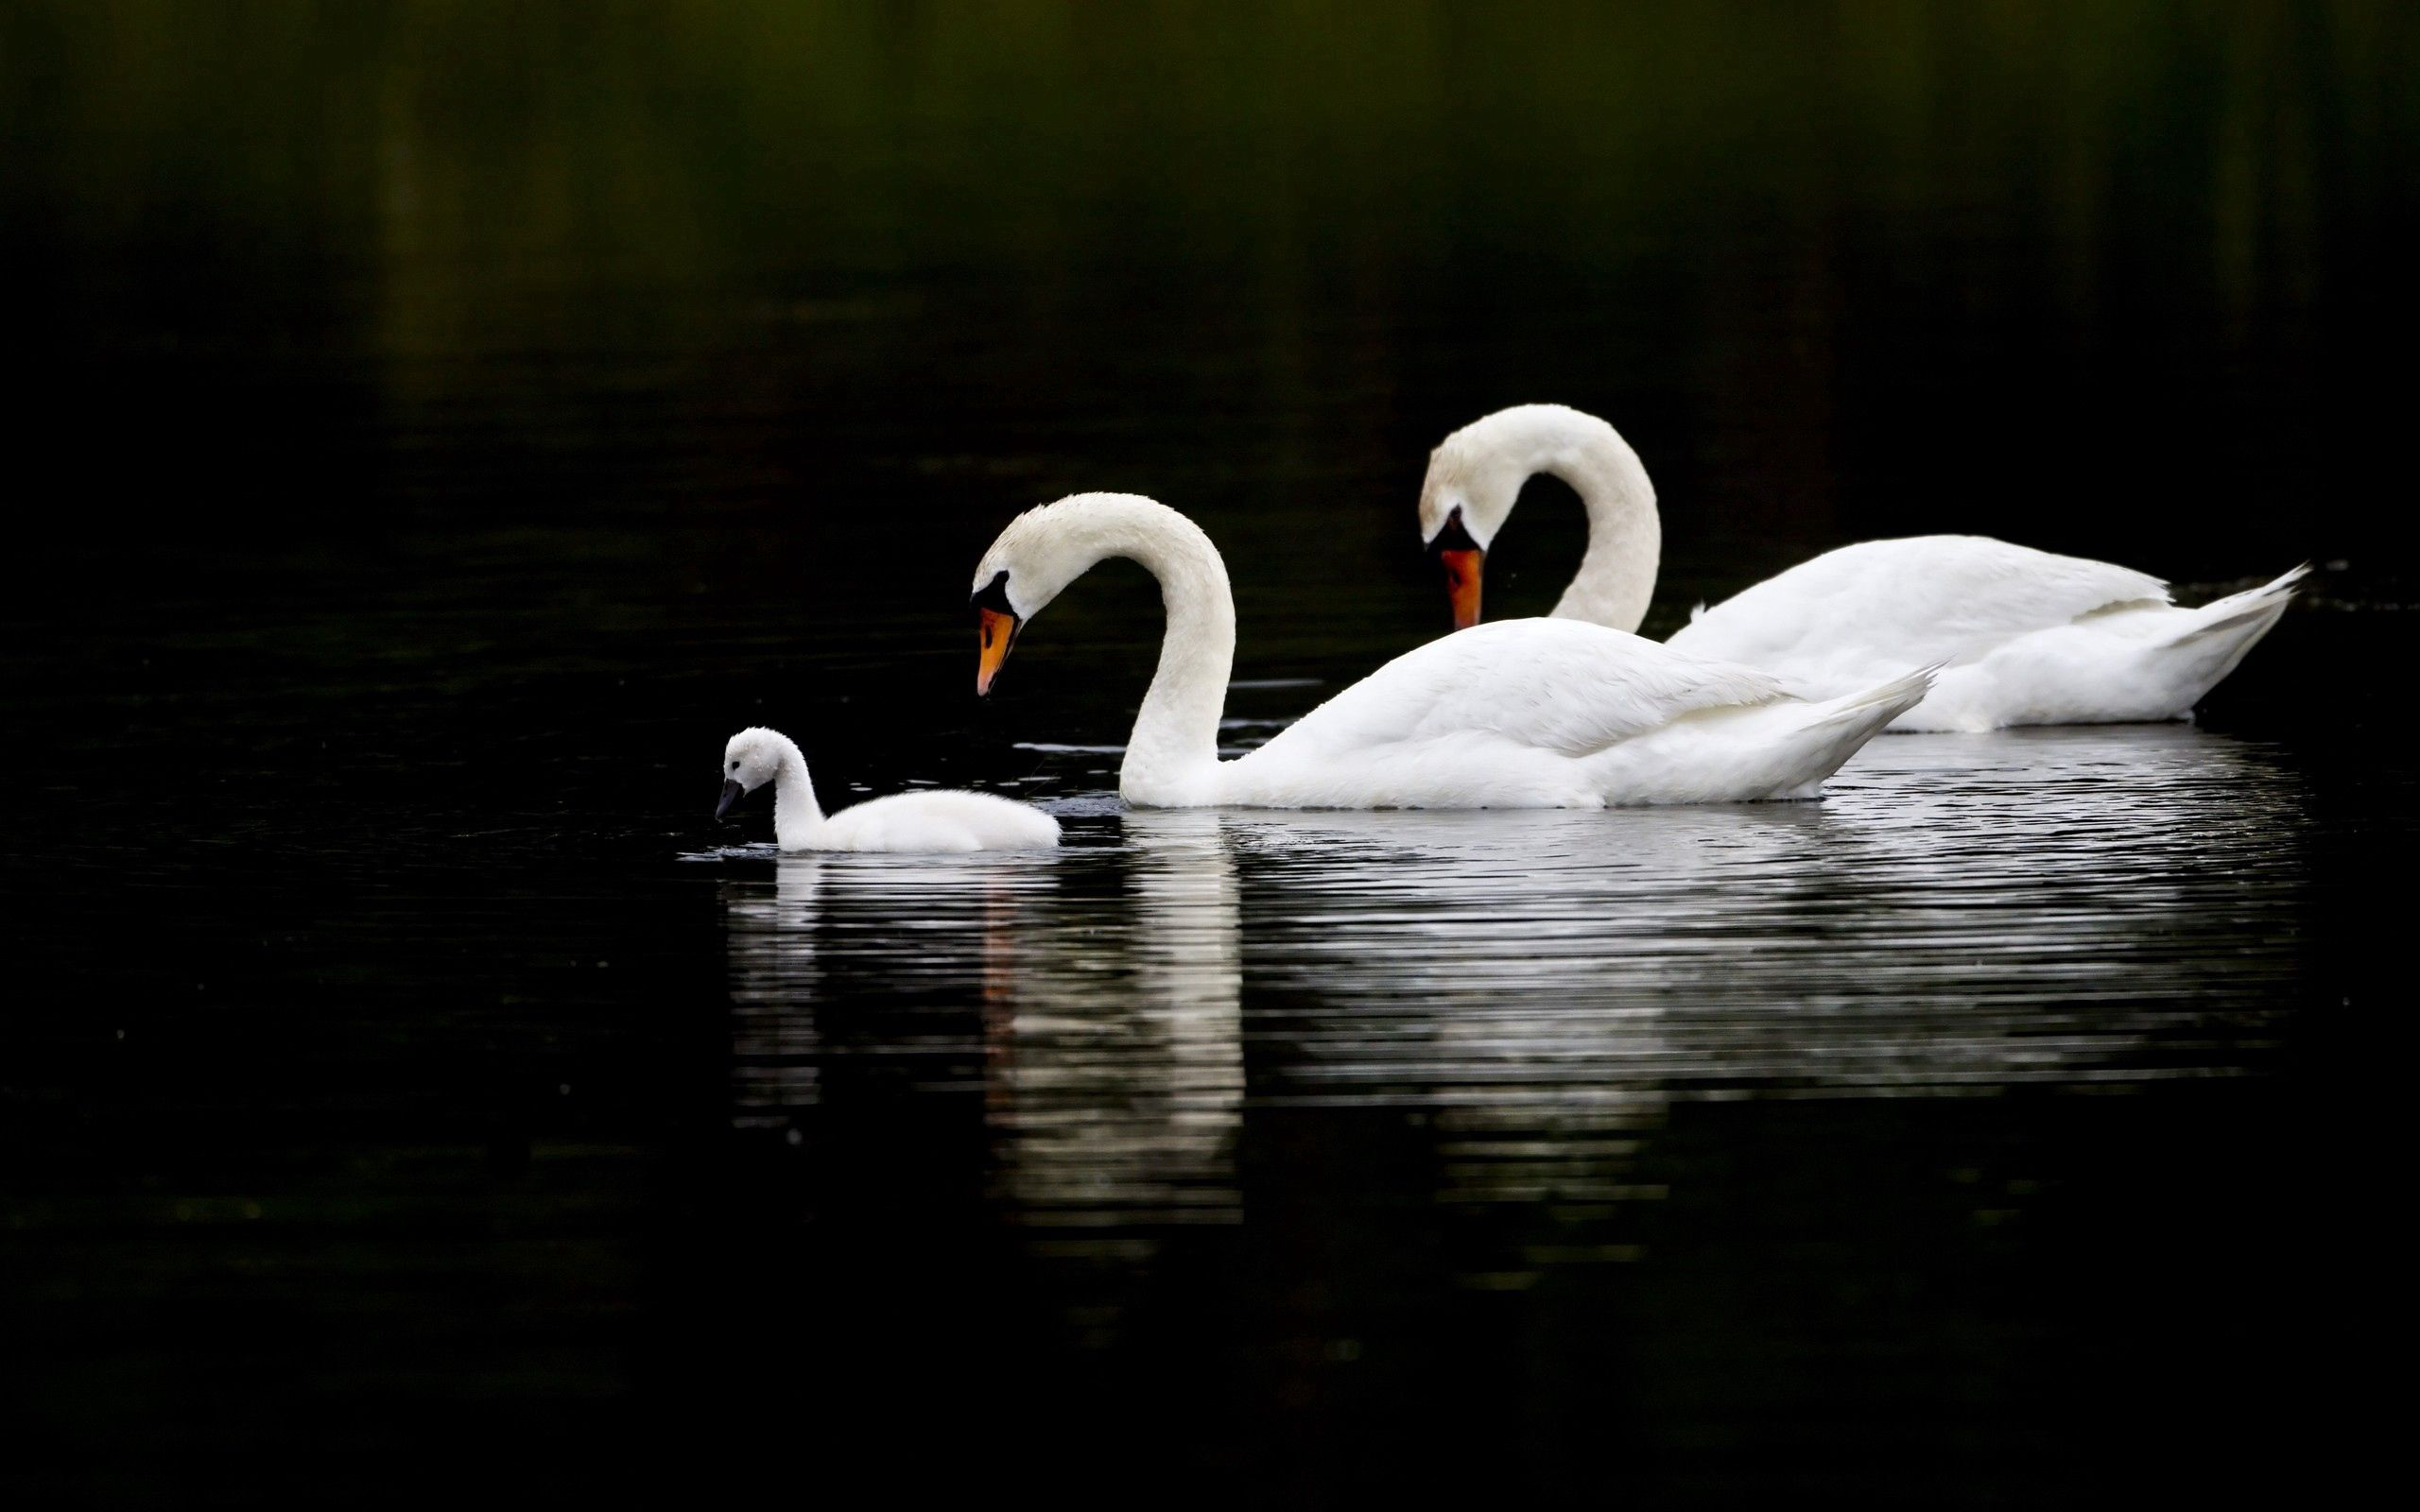 106888 download wallpaper Animals, Swans, Water, To Swim, Swim, Reflection screensavers and pictures for free